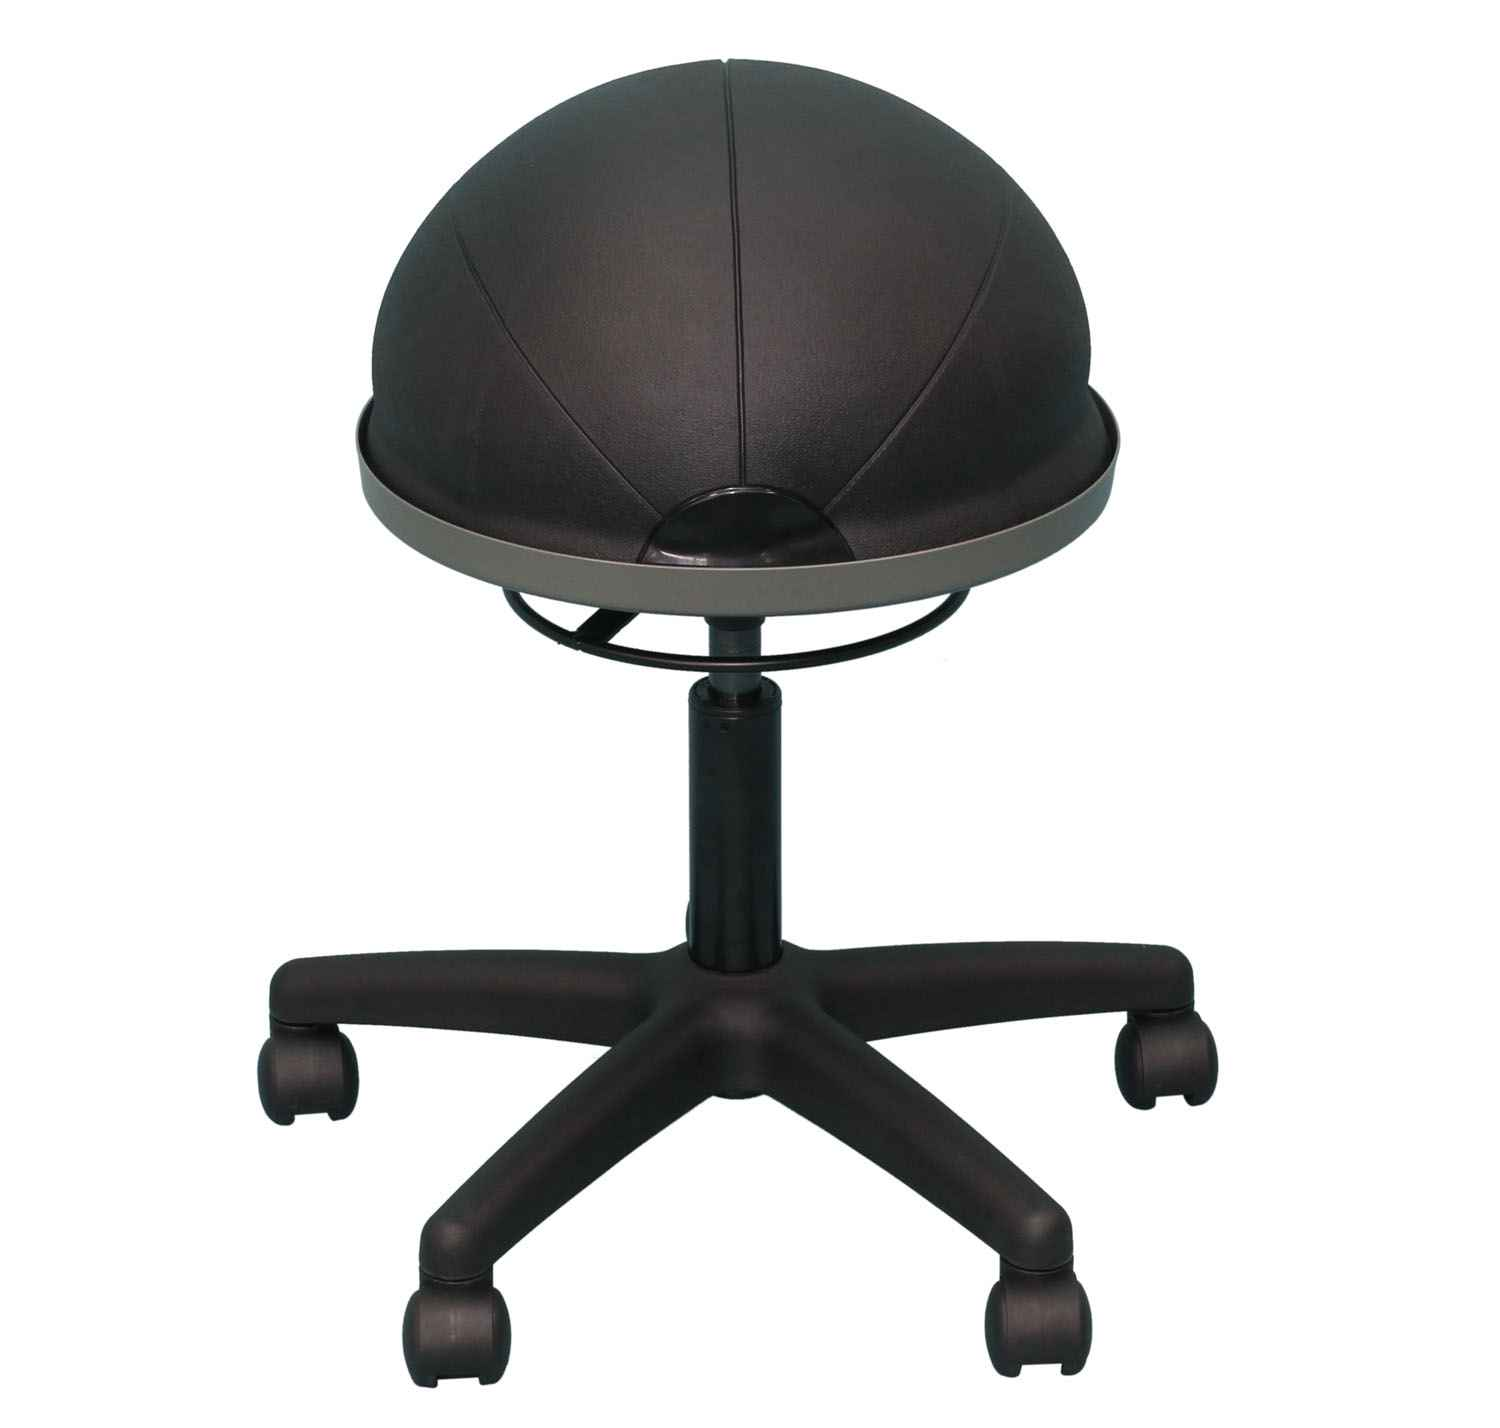 Ergonomic Swivel Office Chair Ergo Ball Chair Sale Office Furniture